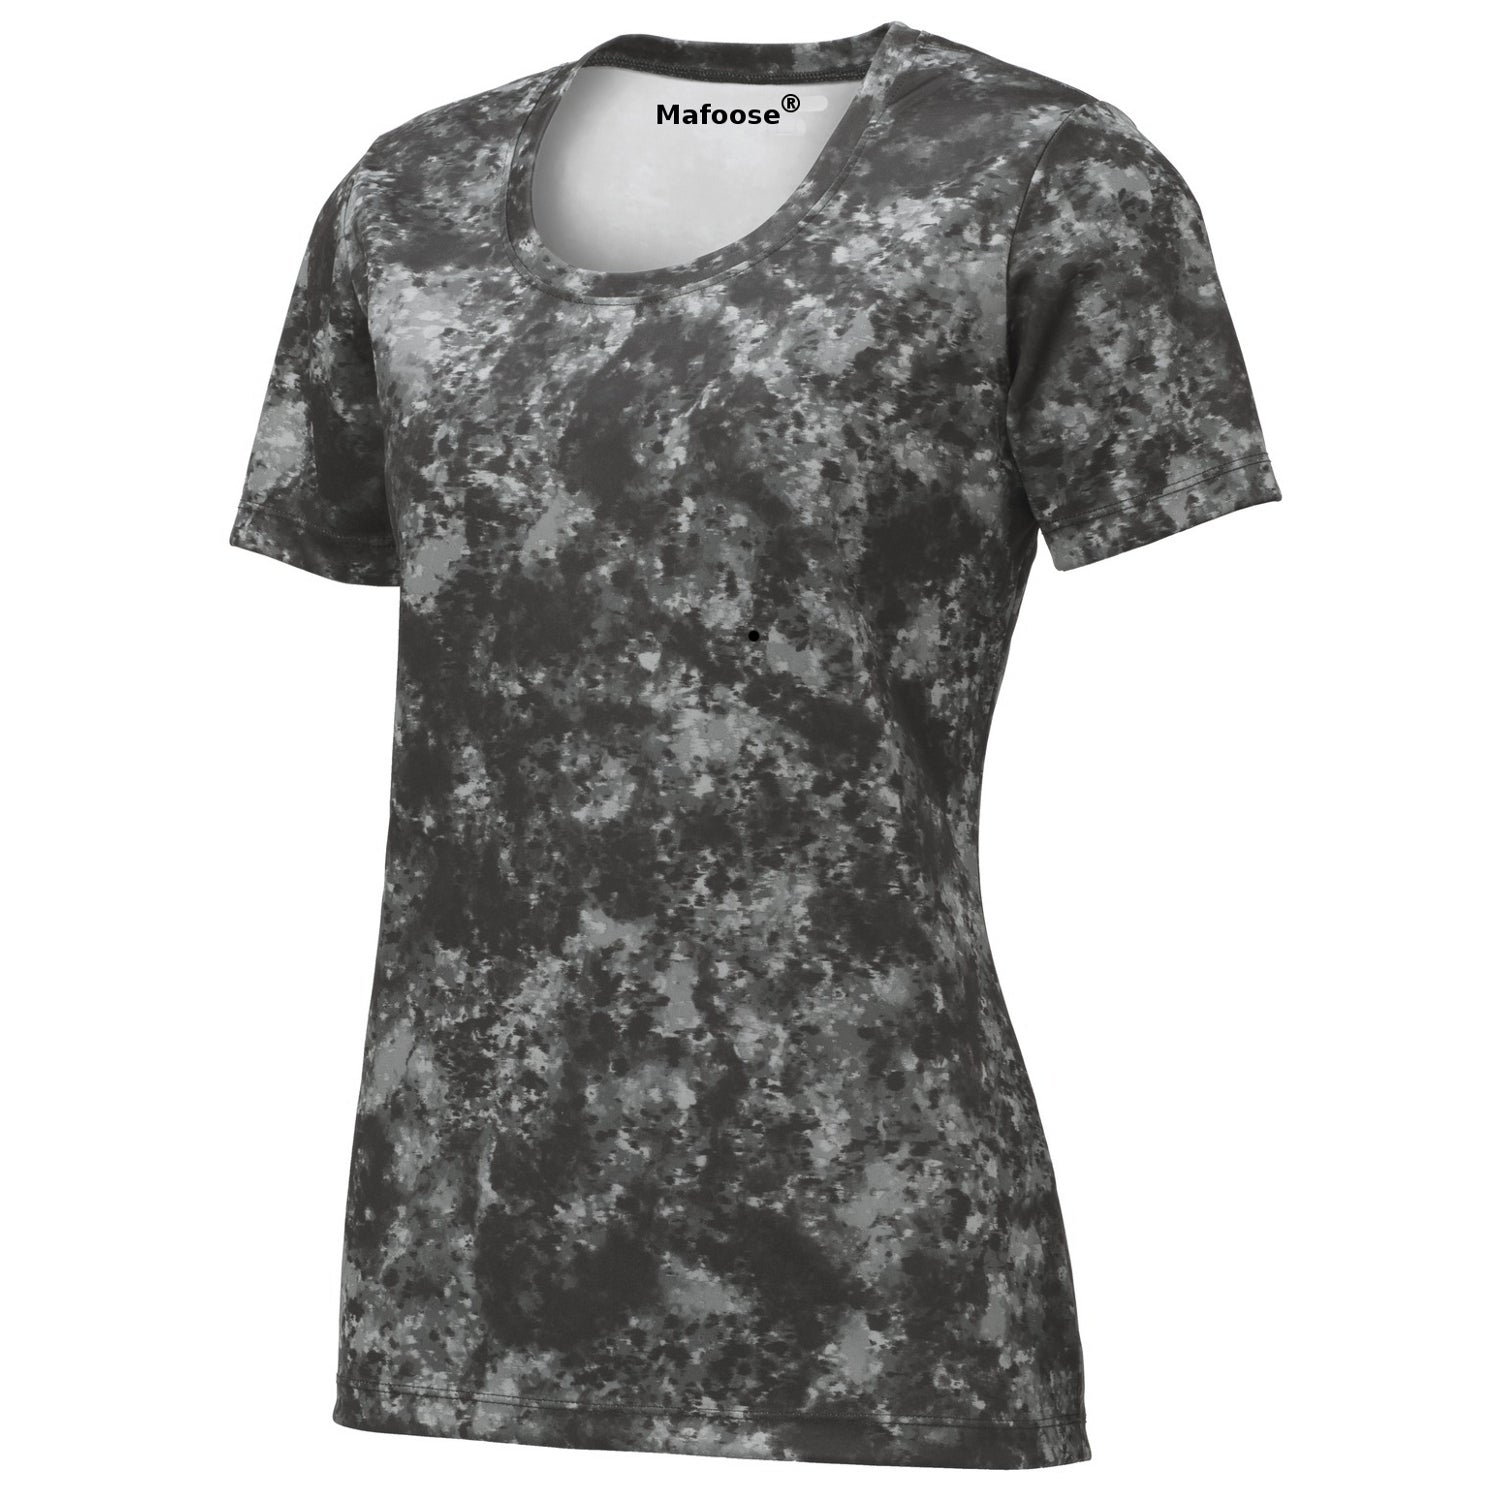 Mafoose Ladies Mineral Freeze Scoop Neck Tee Shirt Black-Front